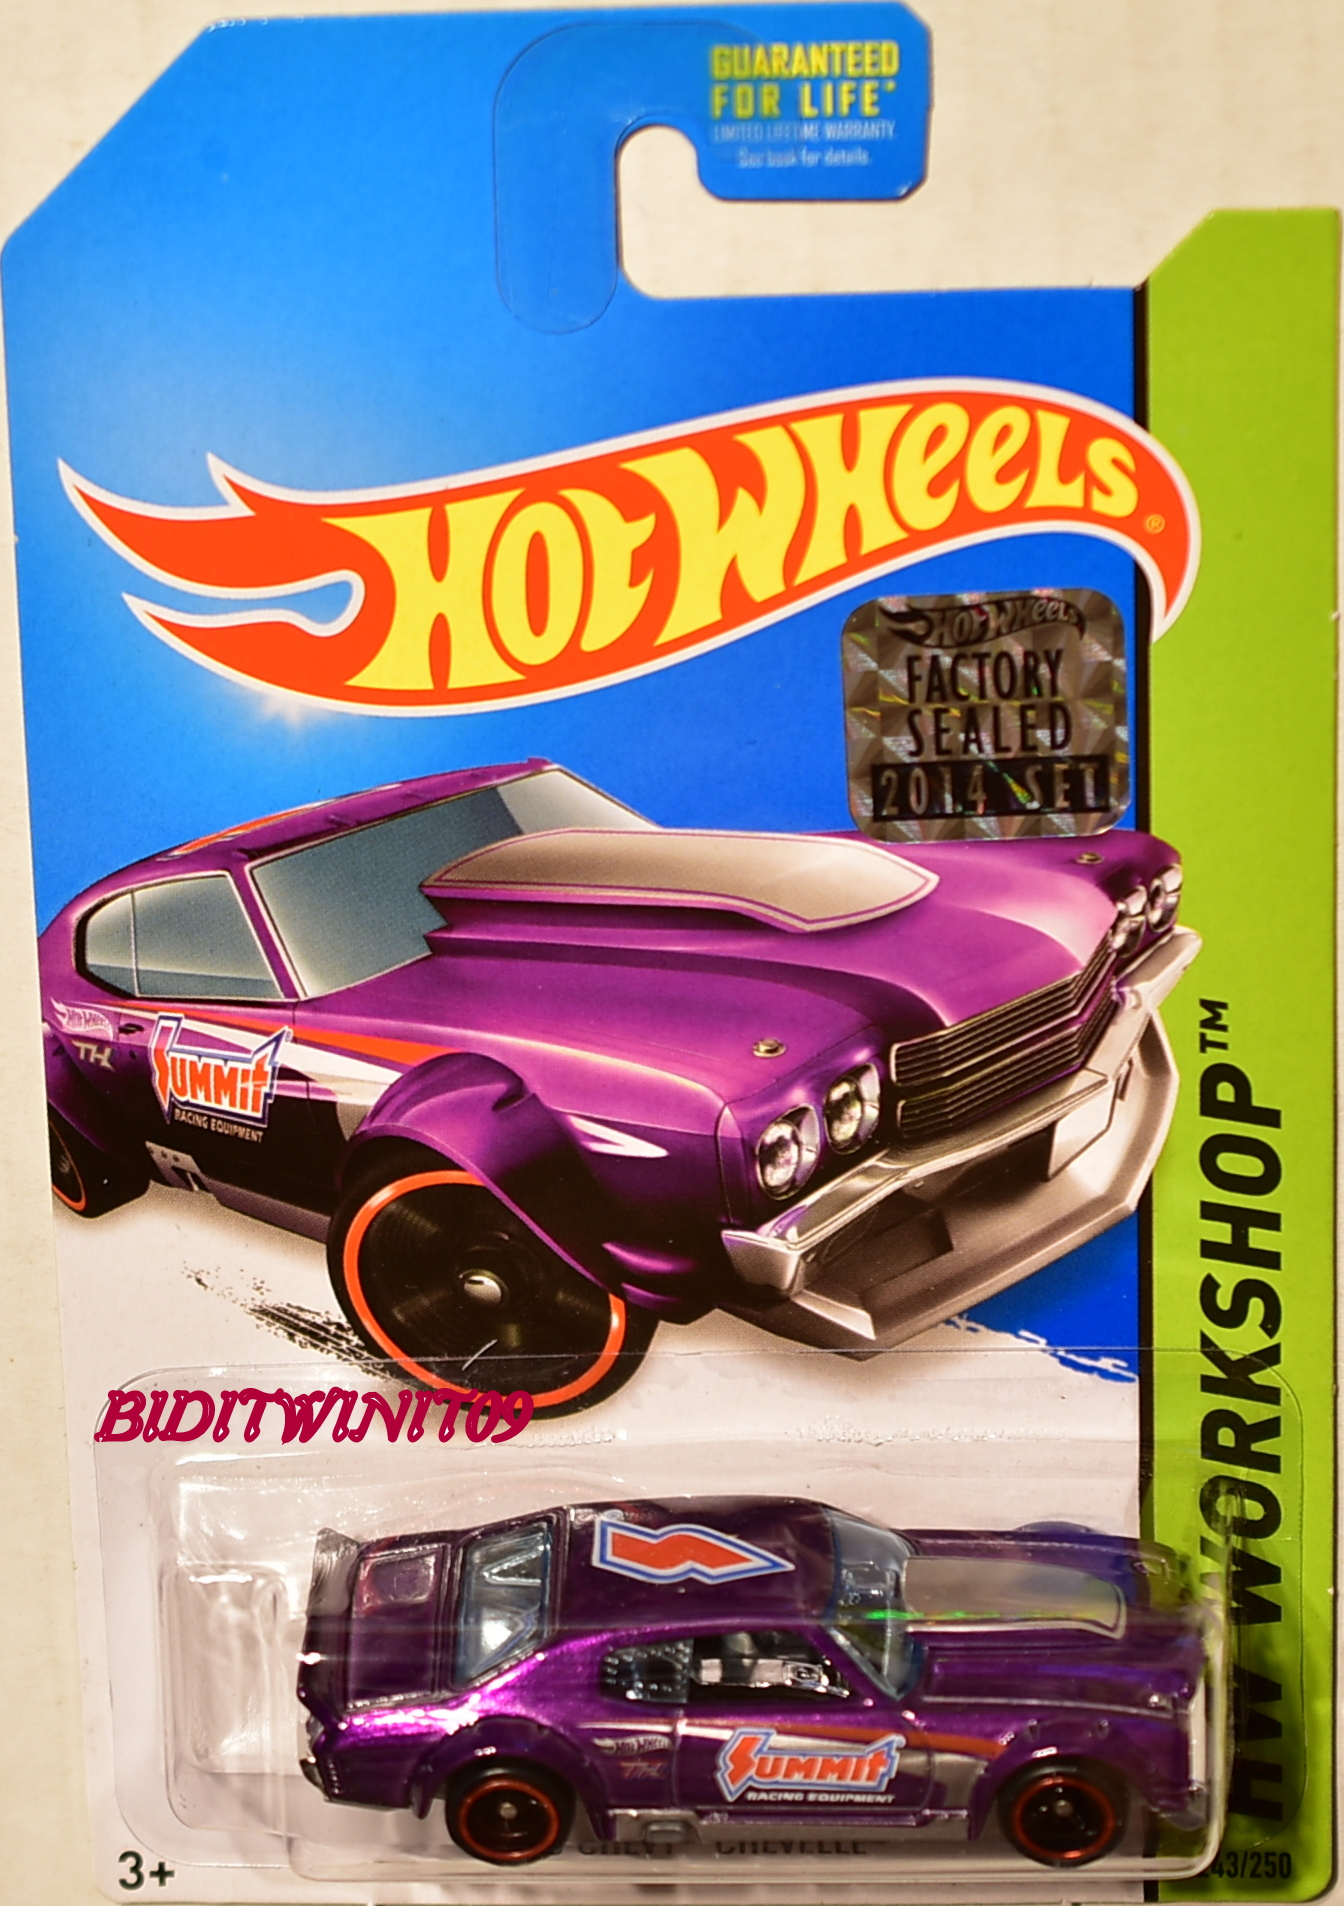 HOT WHEELS 2014 SUPER TREASURE HUNT '70 CHEVY CHEVELLE FACTORY SEALED